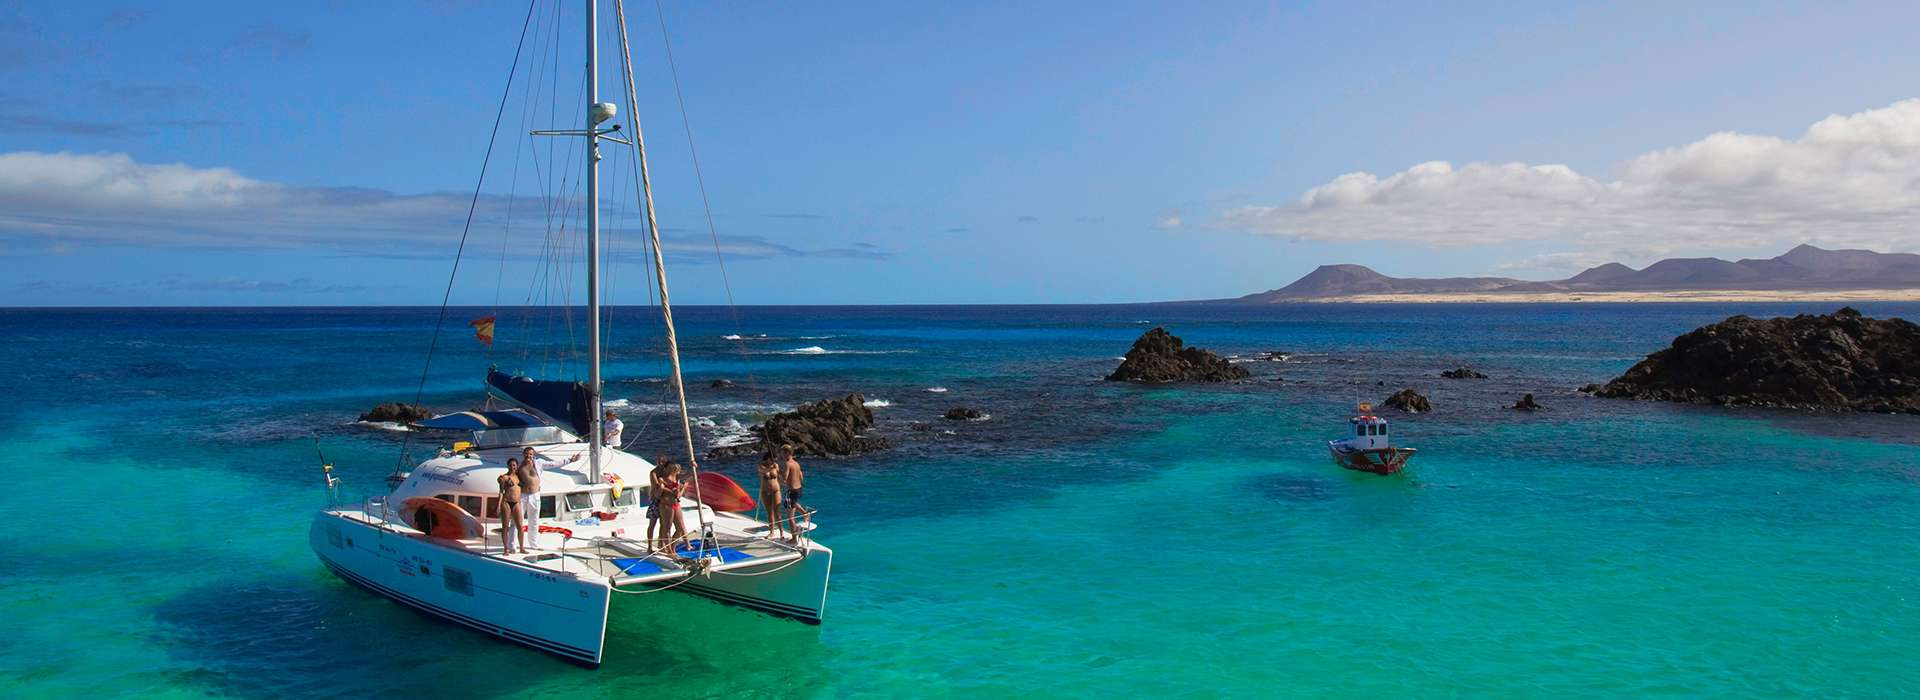 From Fuerteventura to Lanzarote in private catamaran